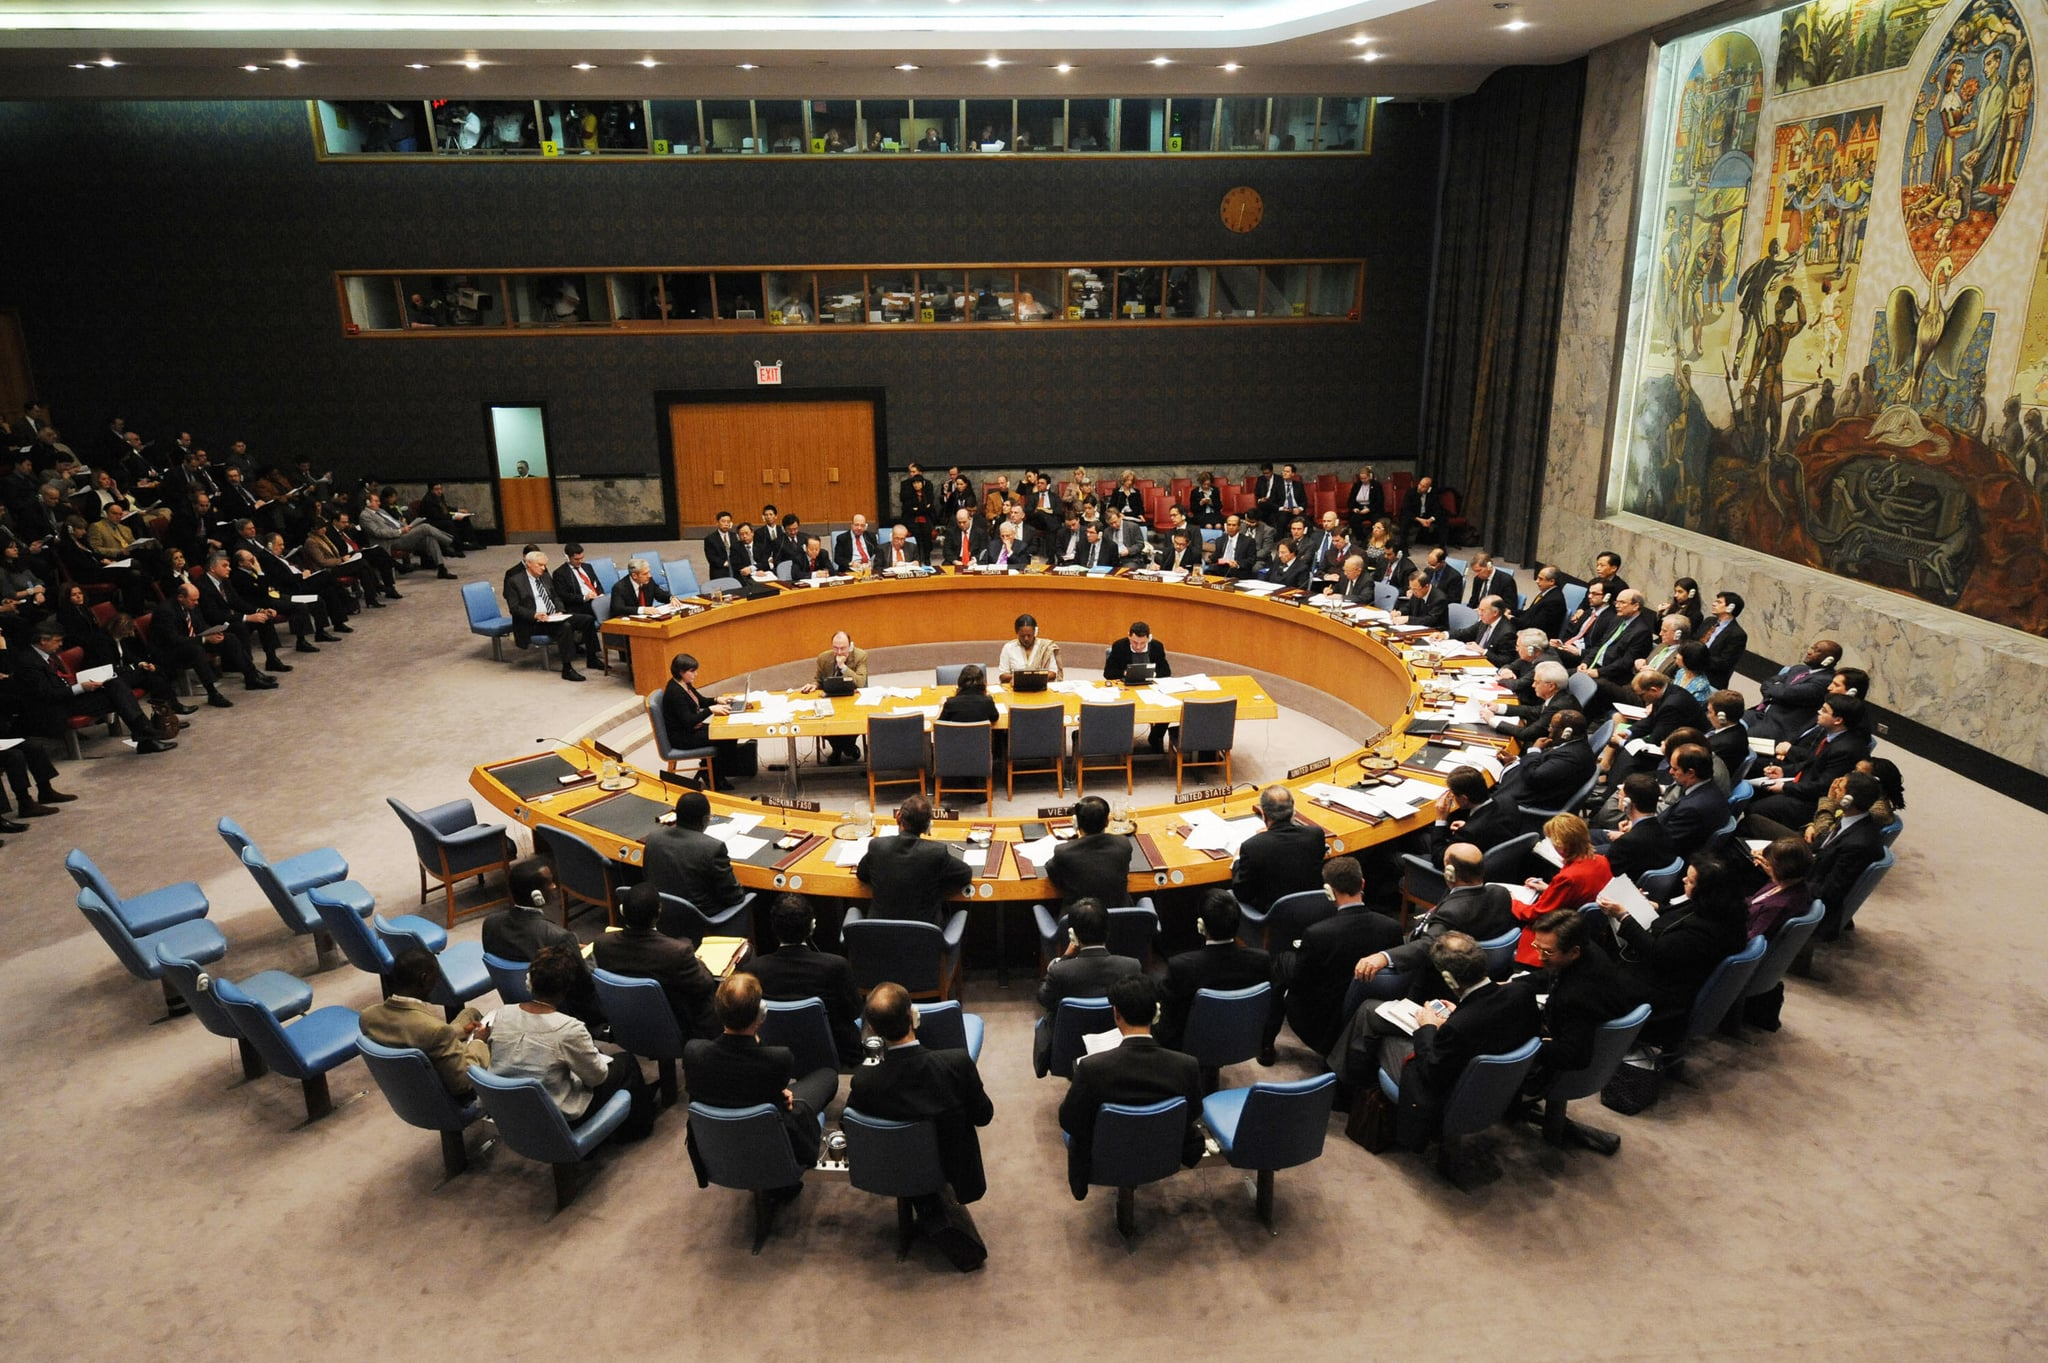 The United Nations Security Council met in New York, the day after Kosovo declared independence to discuss the situation.